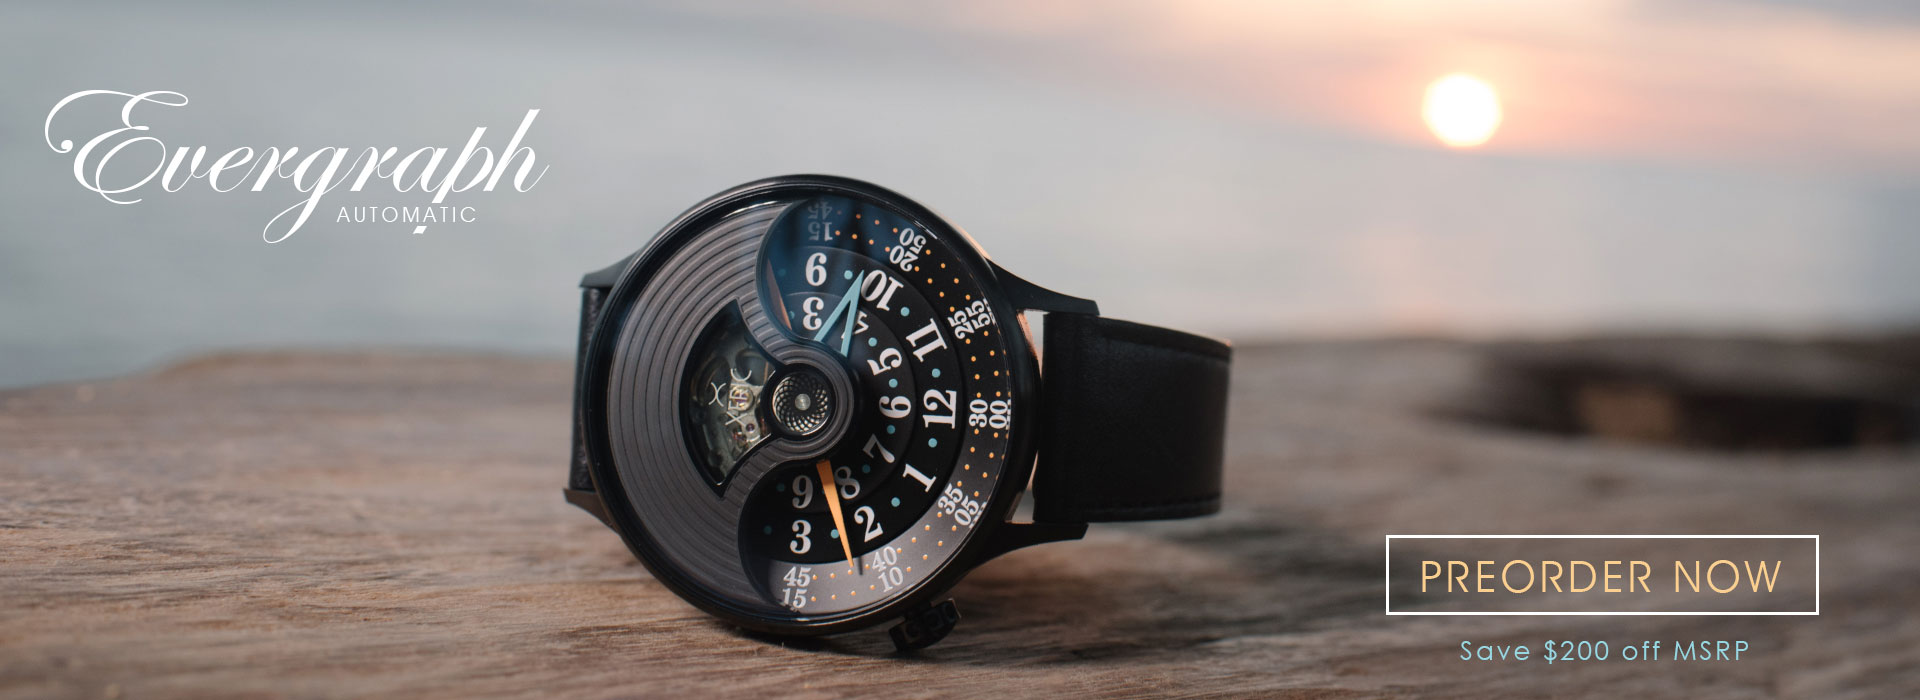 Xeric Evergraph Watches